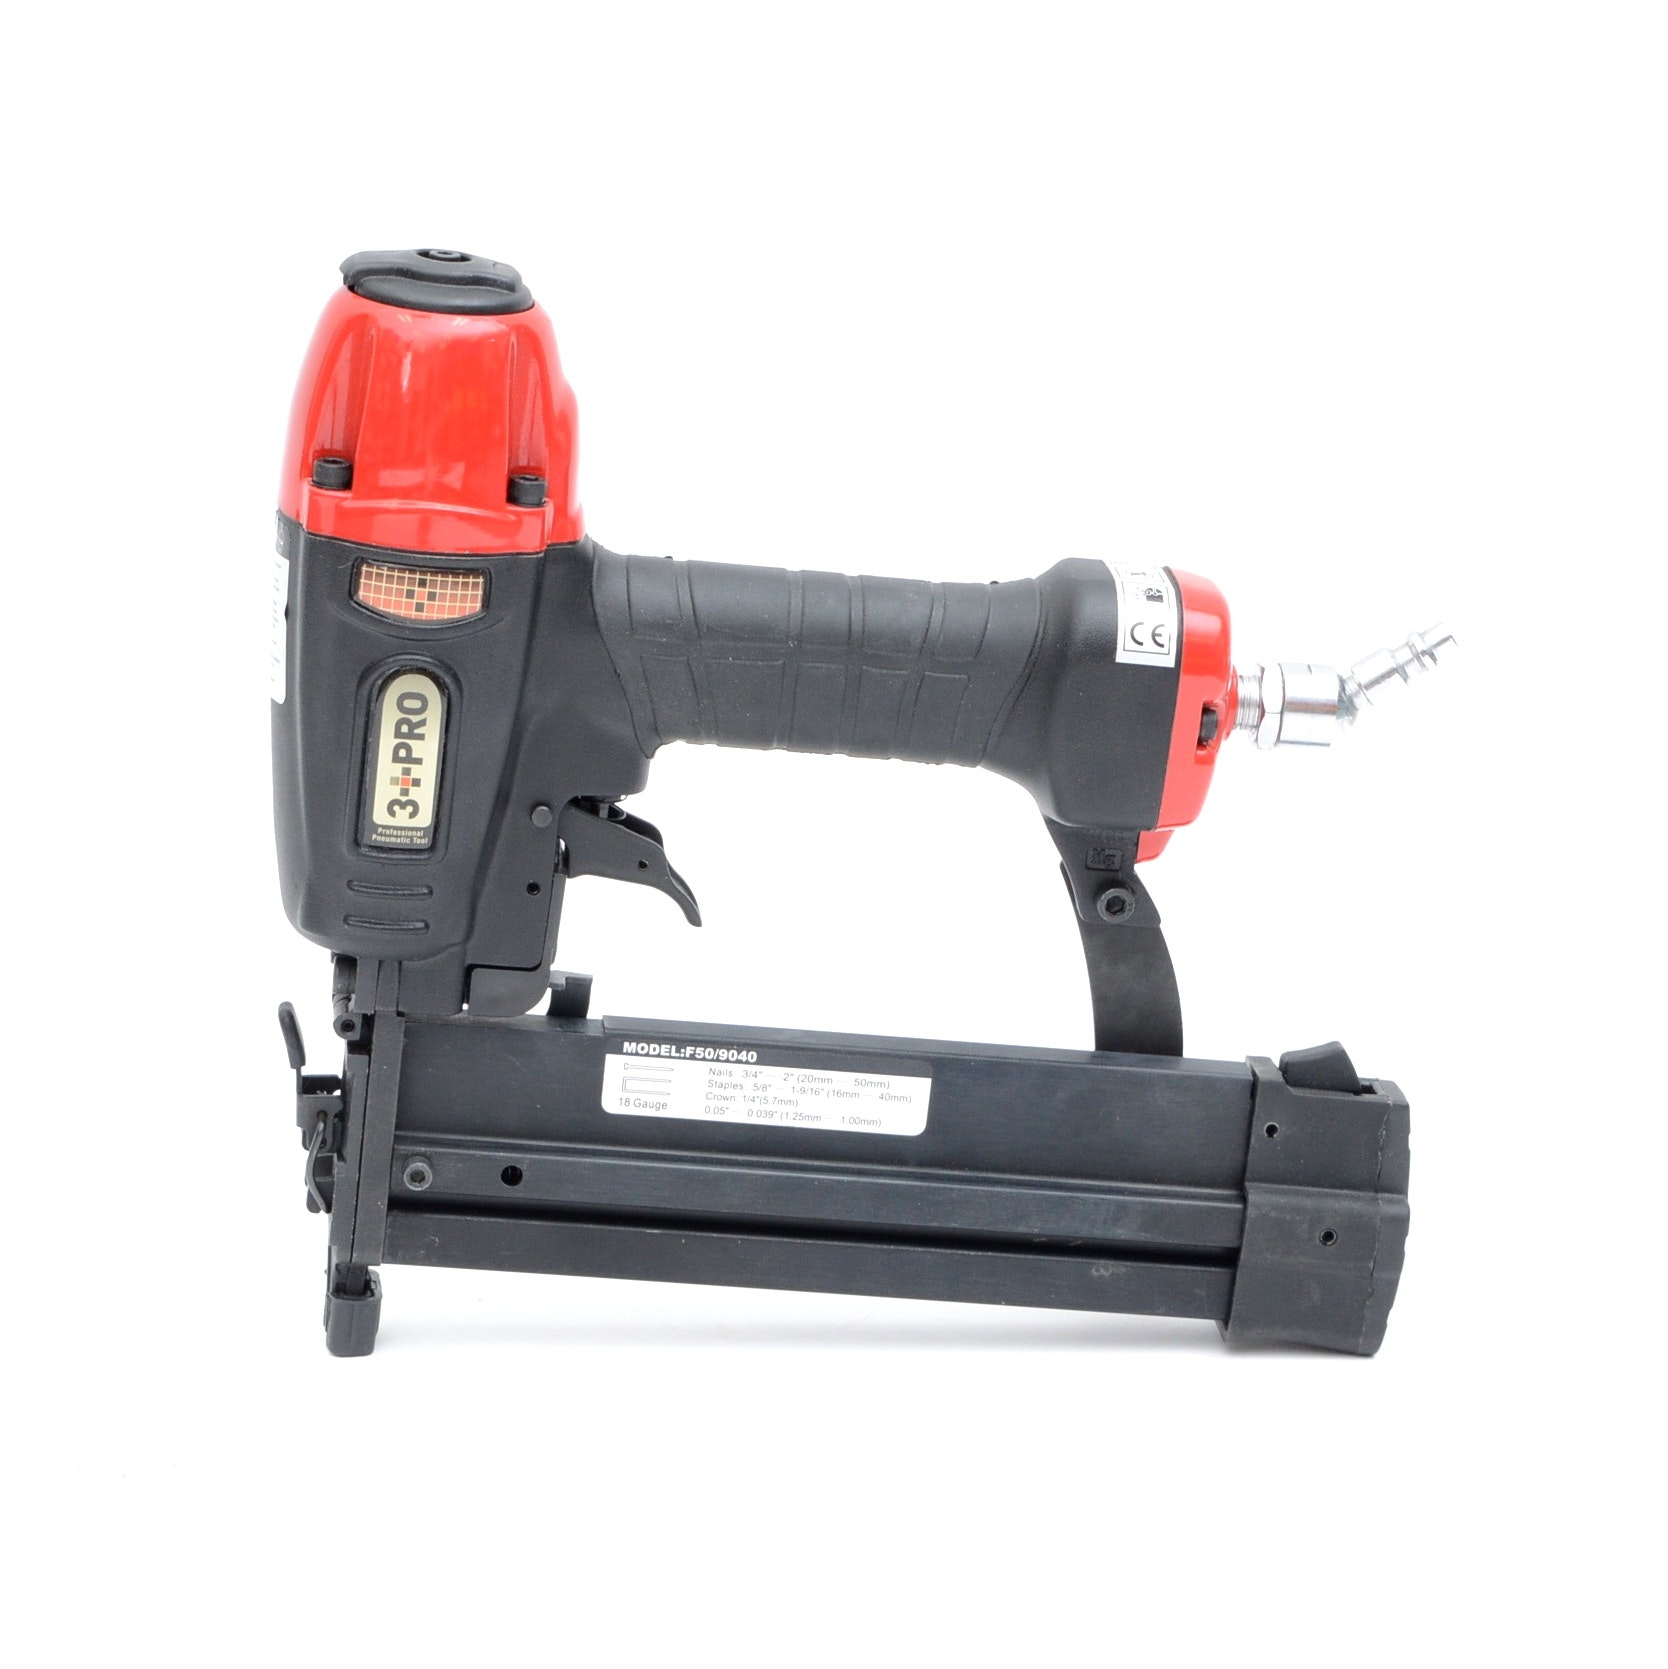 3 PRO 18 Gauge Combination Nailer/Stapler